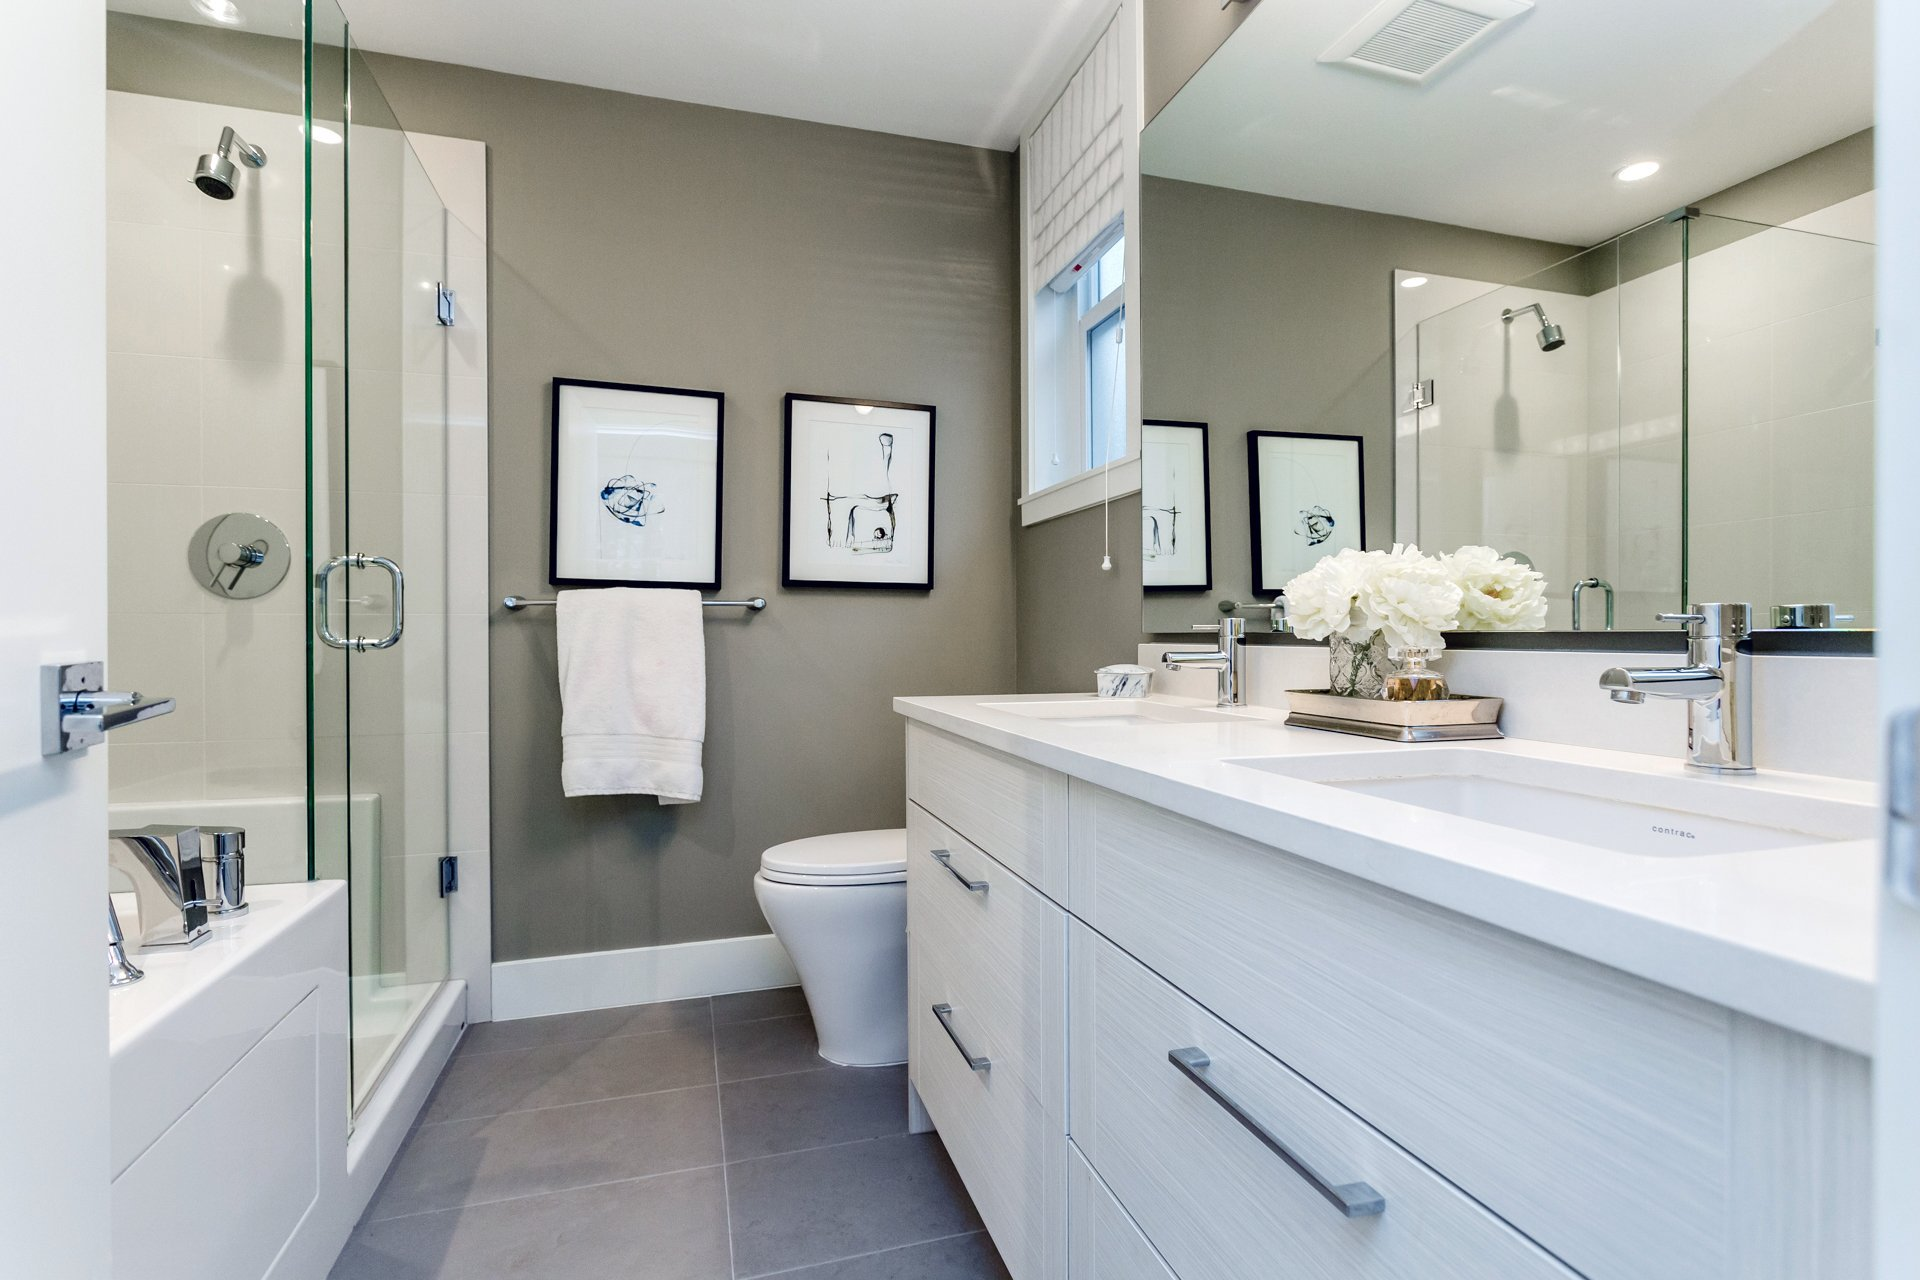 """Photo 25: Photos: 8 8217 204B Street in Langley: Willoughby Heights Townhouse for sale in """"EVERLY GREEN"""" : MLS®# R2236678"""